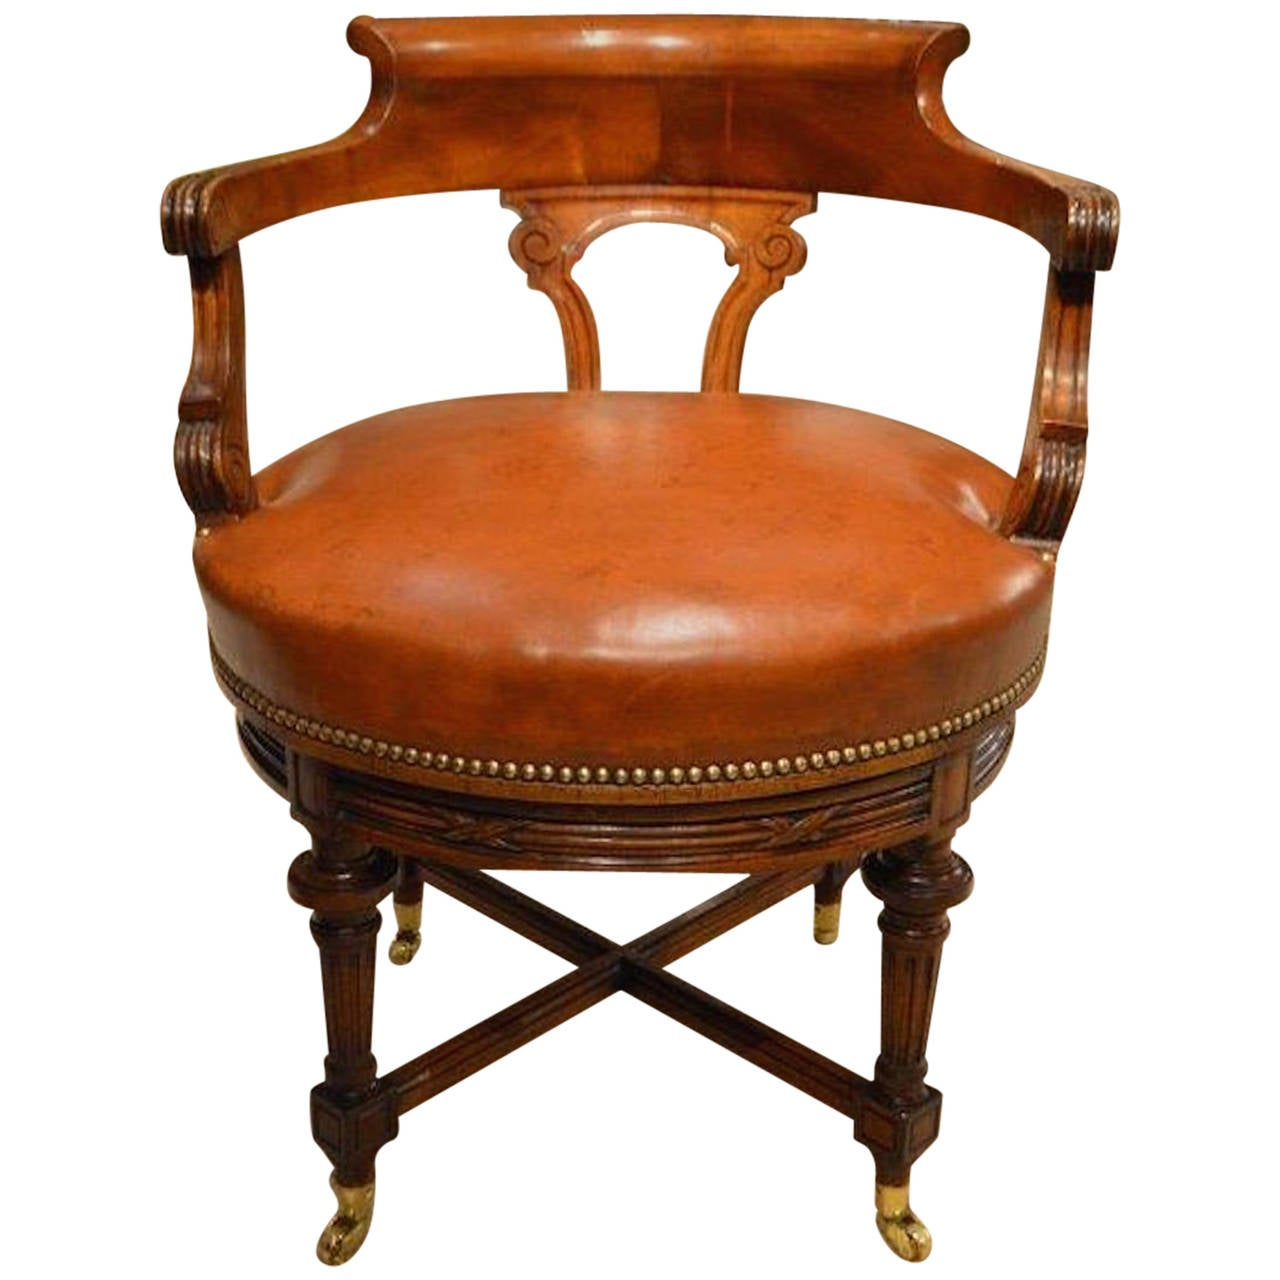 revolving desk chair online buy walnut and leather late victorian period antique